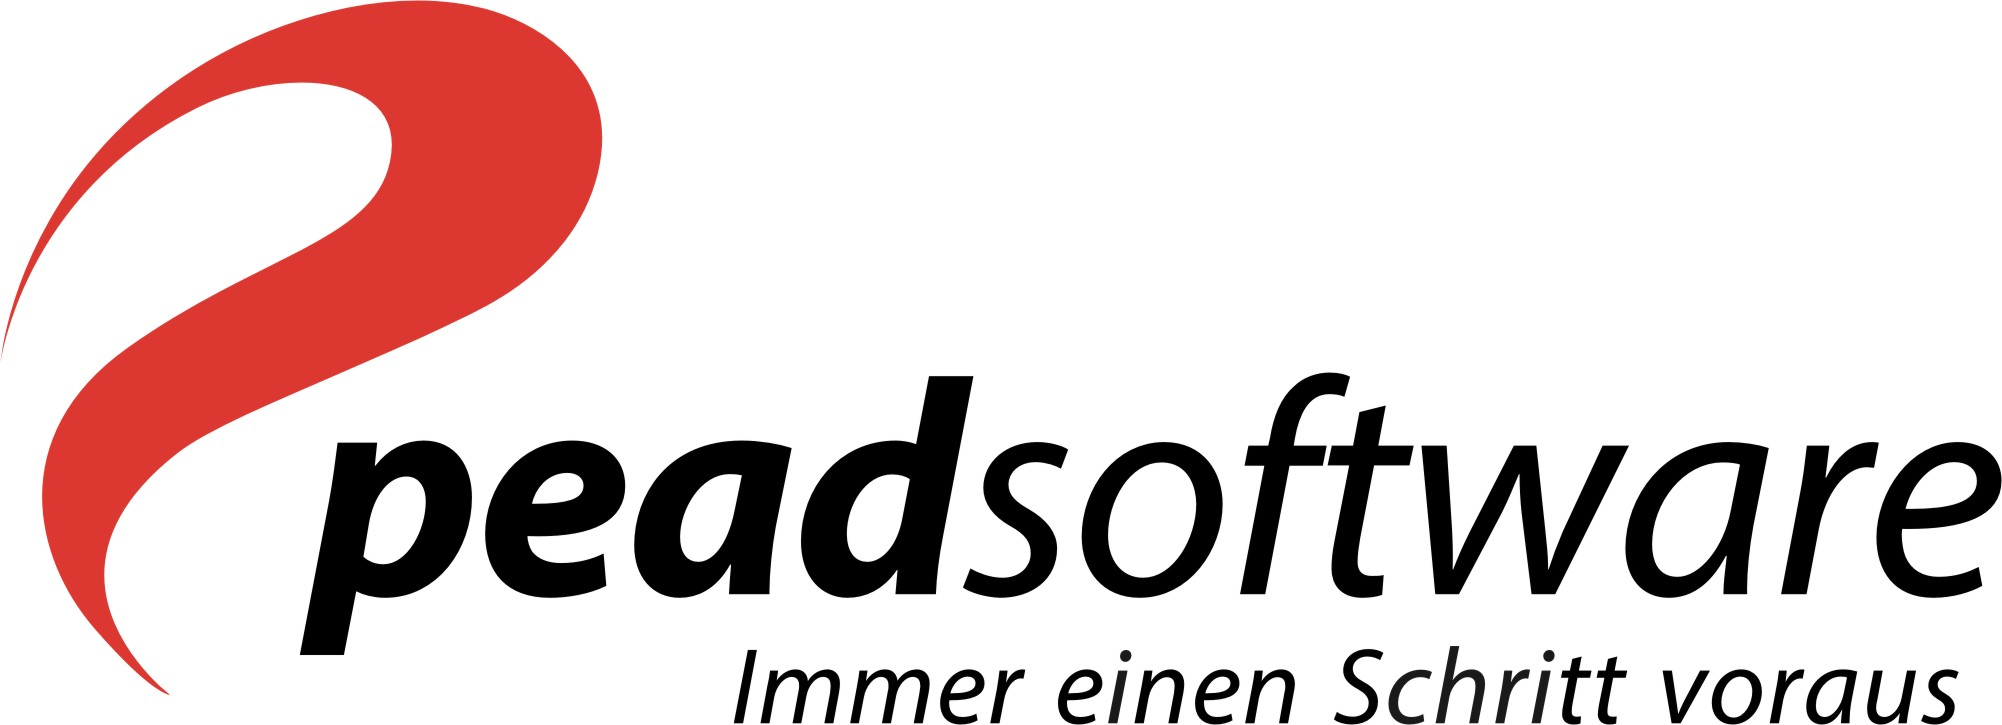 peadsoftware List of Exhibitors 2019 - P